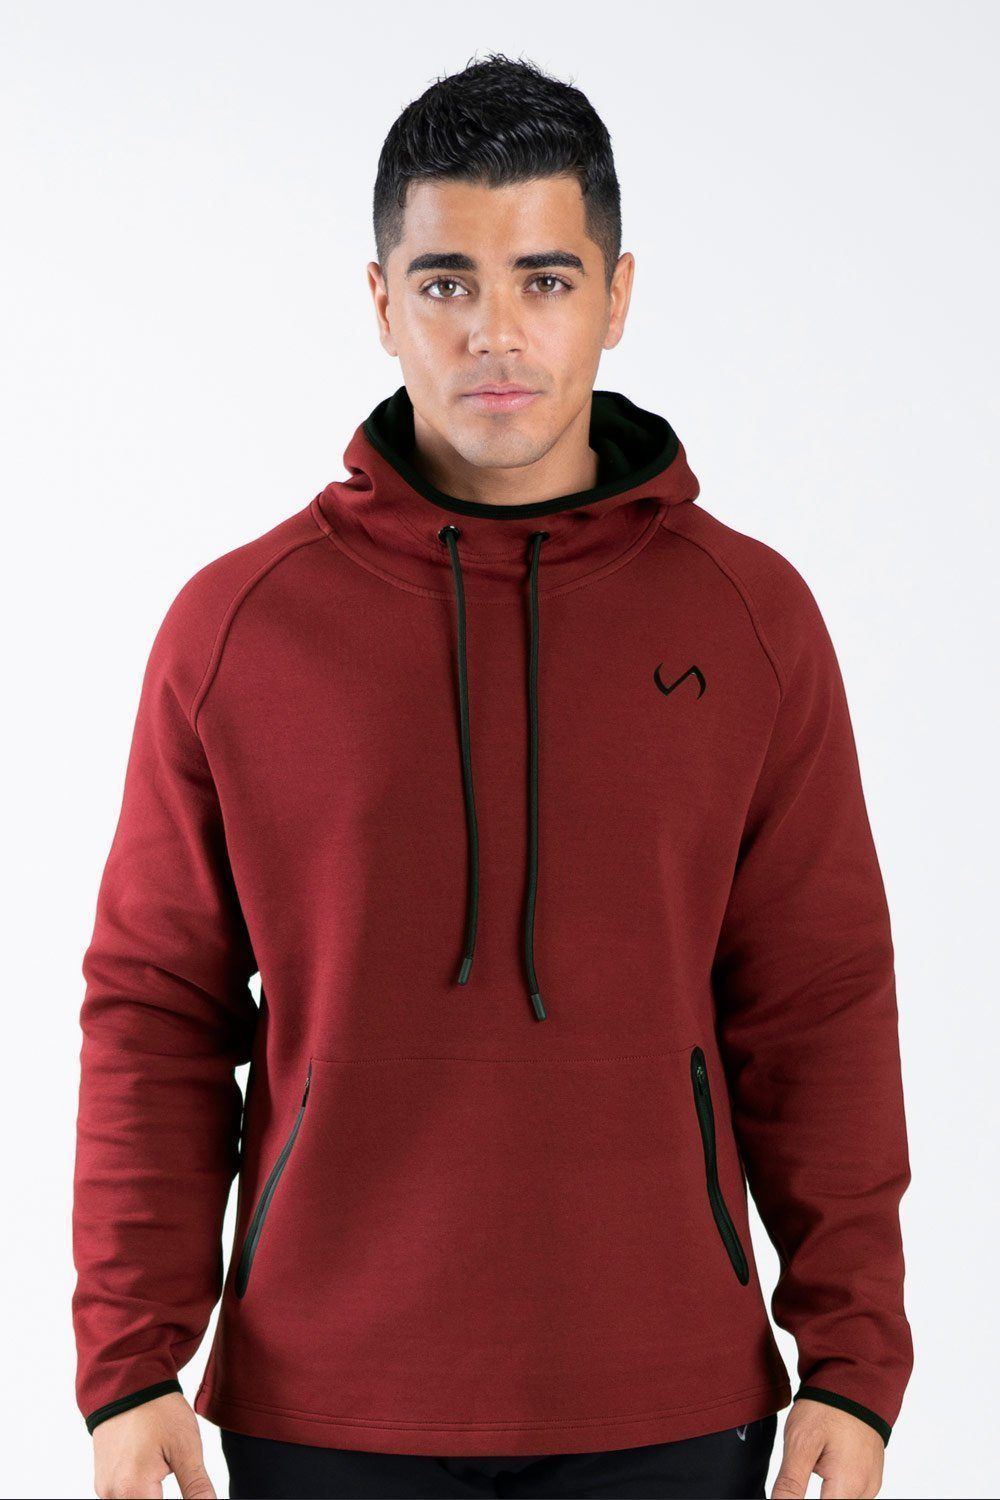 TLF Perses Hoodie - Hoodies & Sweatshirts, Long Sleeves - TLF Apparel | Take Life Further